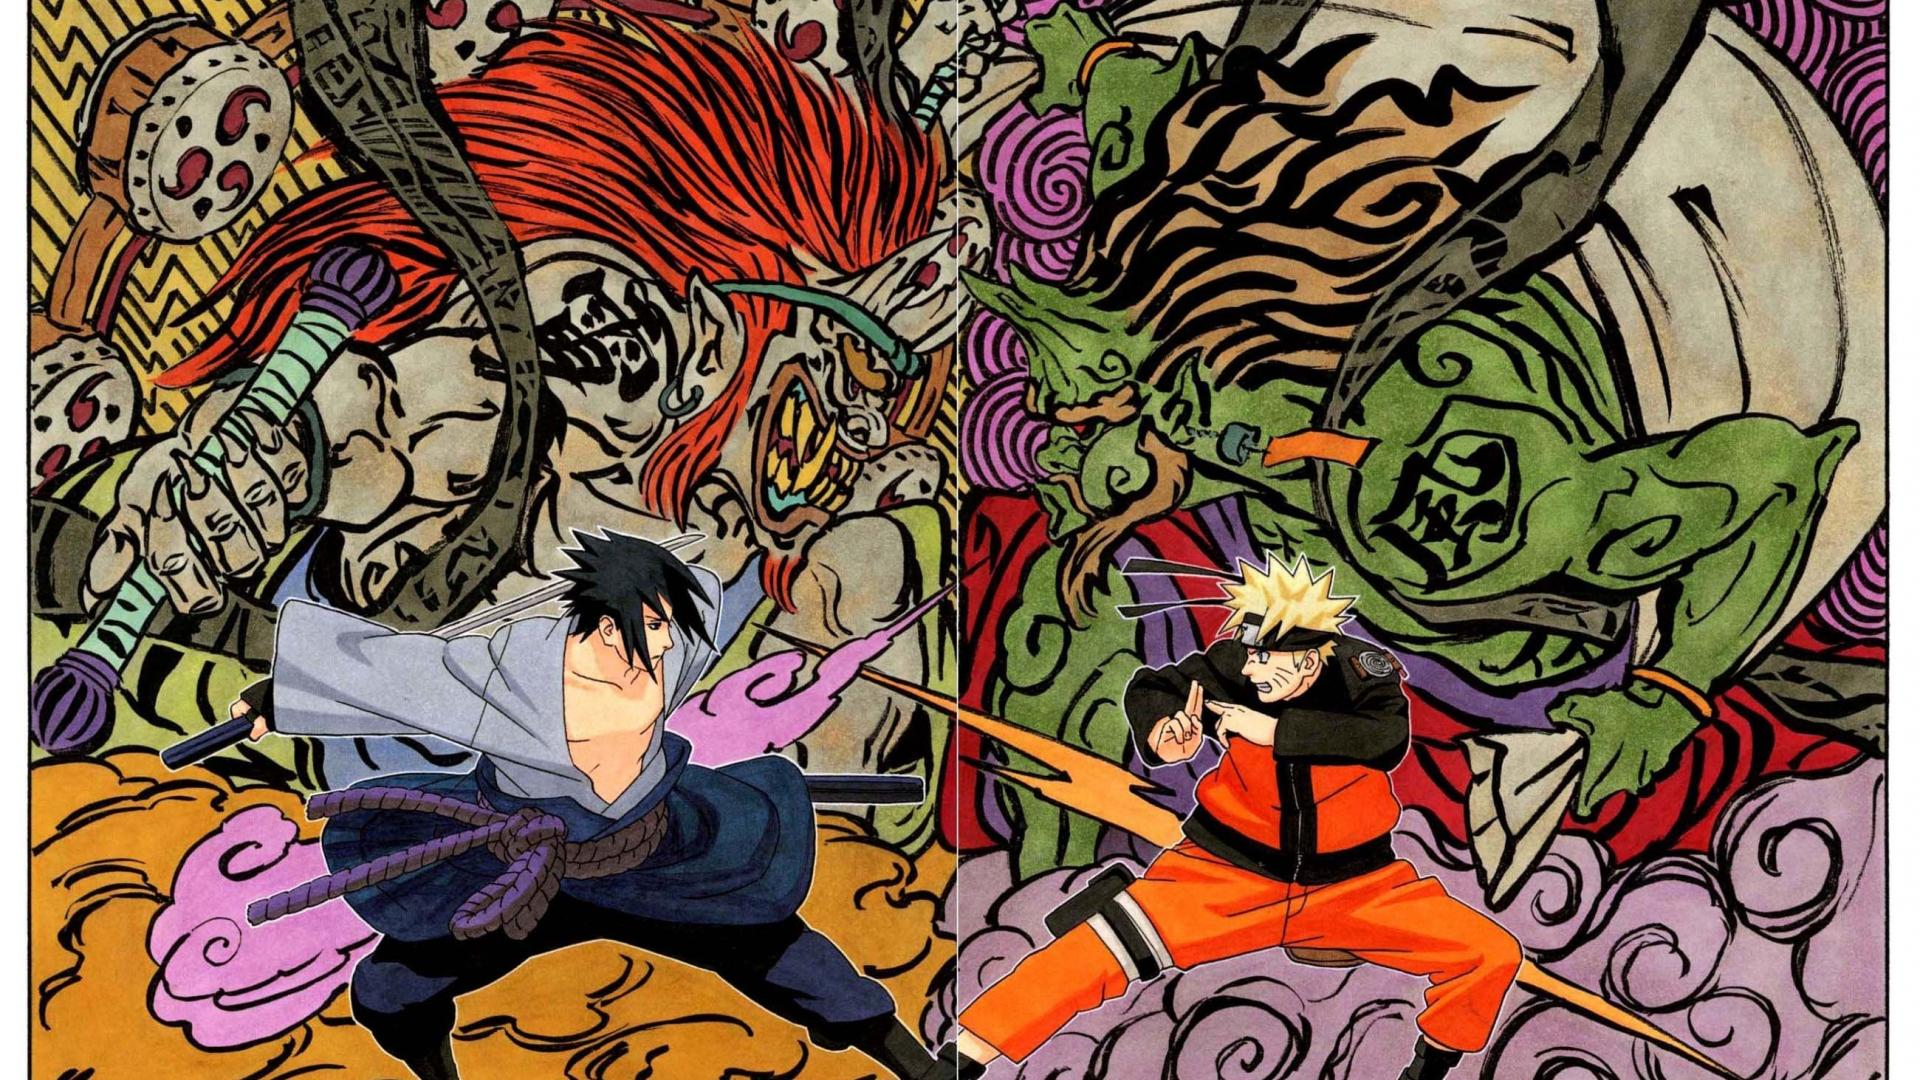 Naruto Manga Wallpapers Top Free Naruto Manga Backgrounds Wallpaperaccess